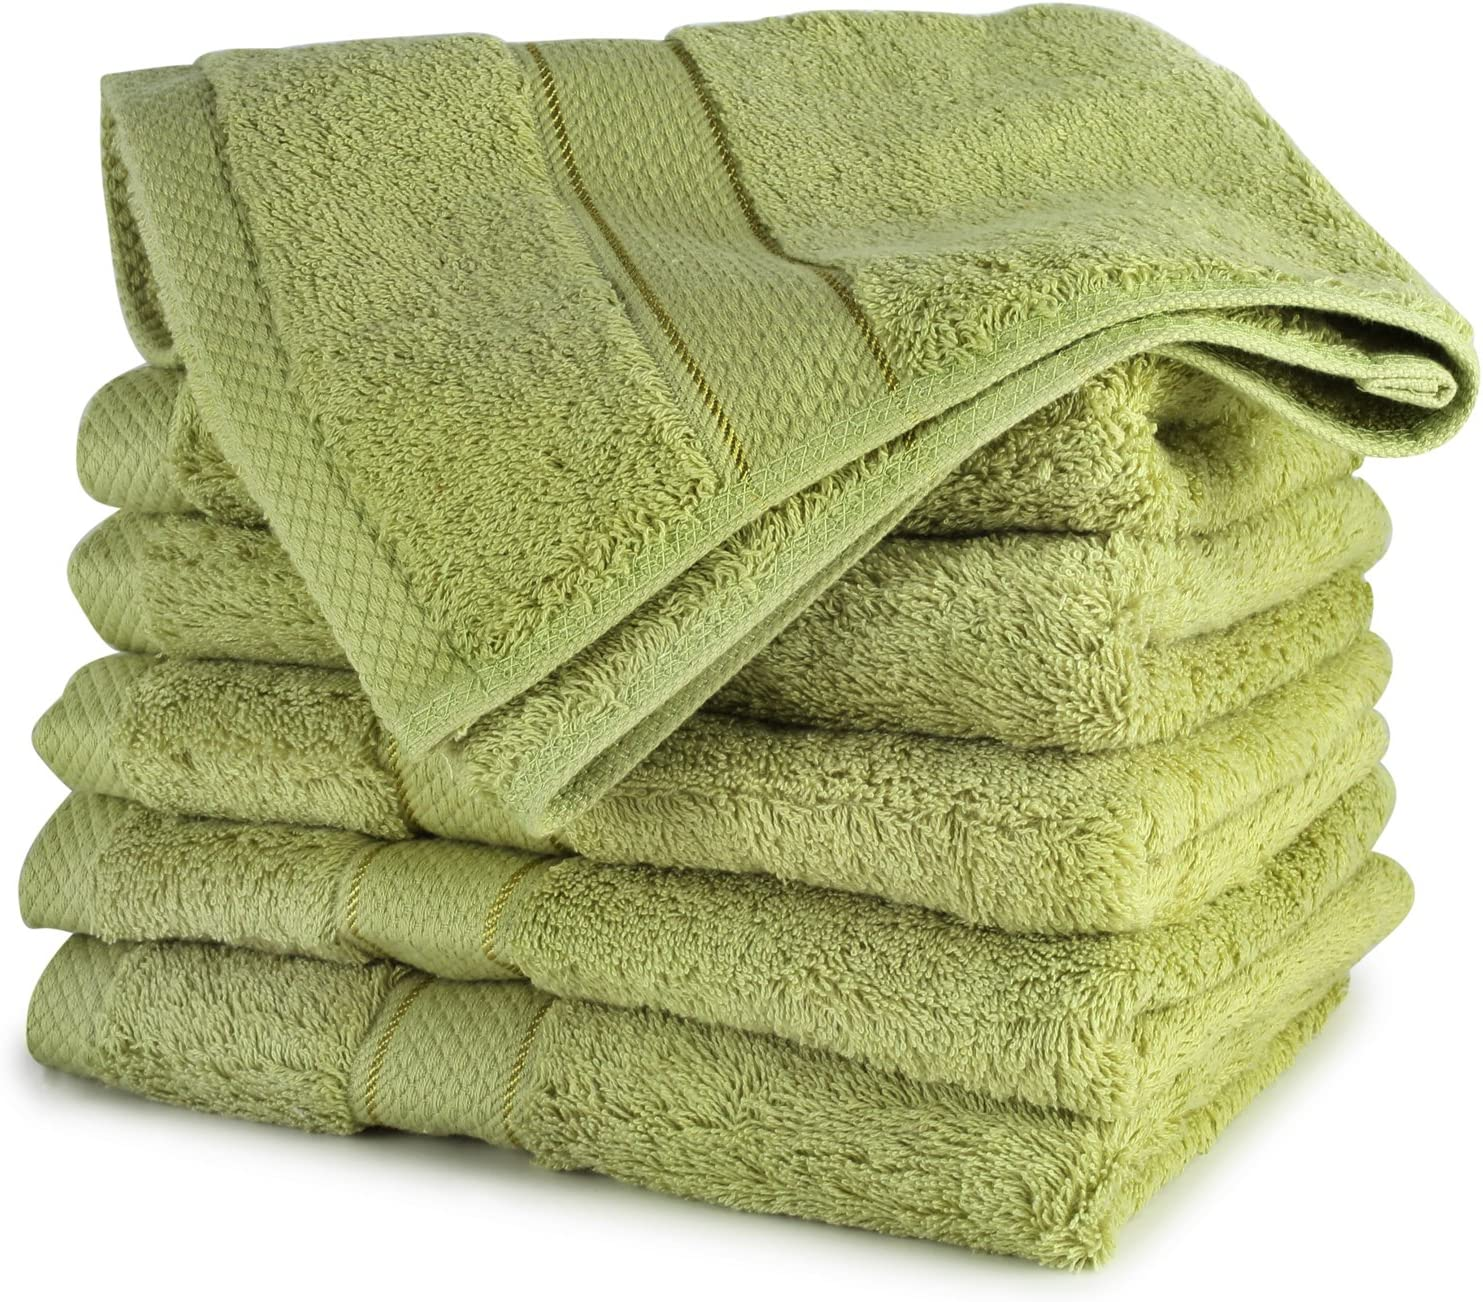 Cozy Homery Egyptian Cotton Wash Cloths for Bathroom | 13x13'' Ultra Soft Face - Body Washcloths for Kids & Adults | 650 GSM Hotel Spa Quality Wash Cloth Towel Set | 6-Pack